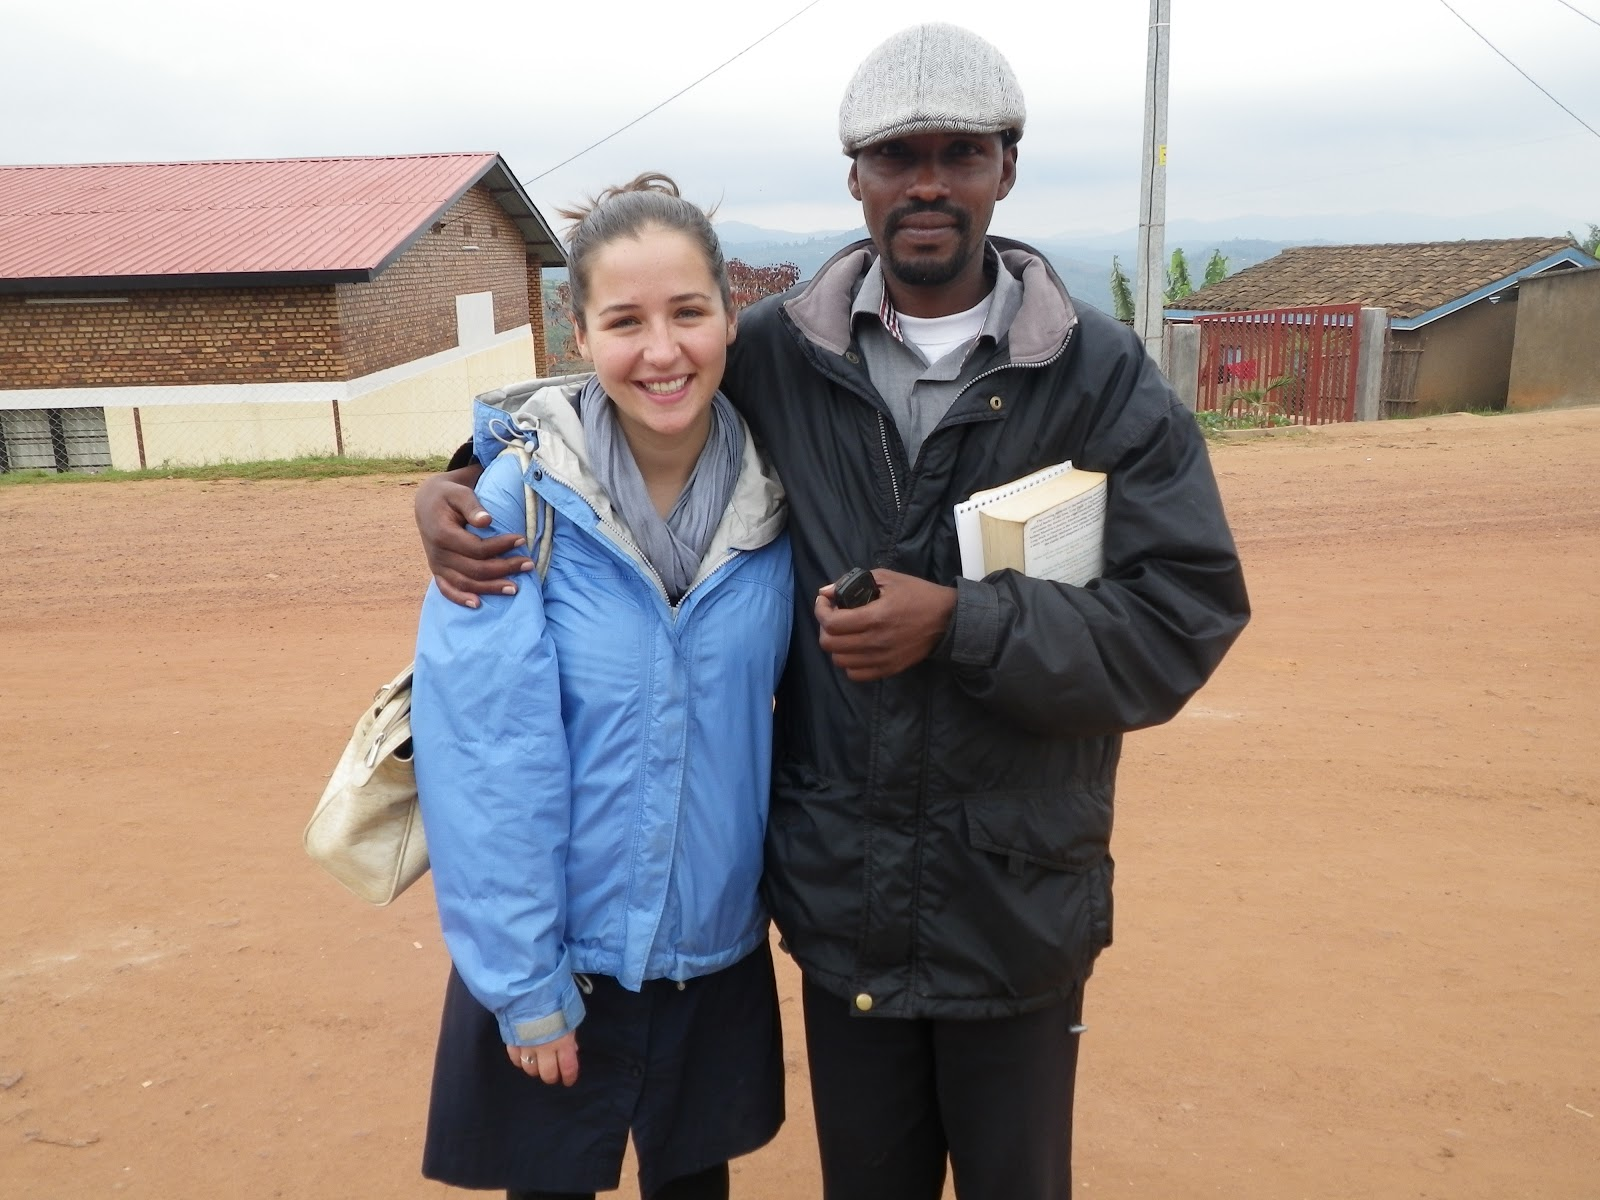 peace corps application essay questions Your best source for help with your peace corps essay is your local pc recruiter they will give you one-on-one feedback that's directly applicable to your.